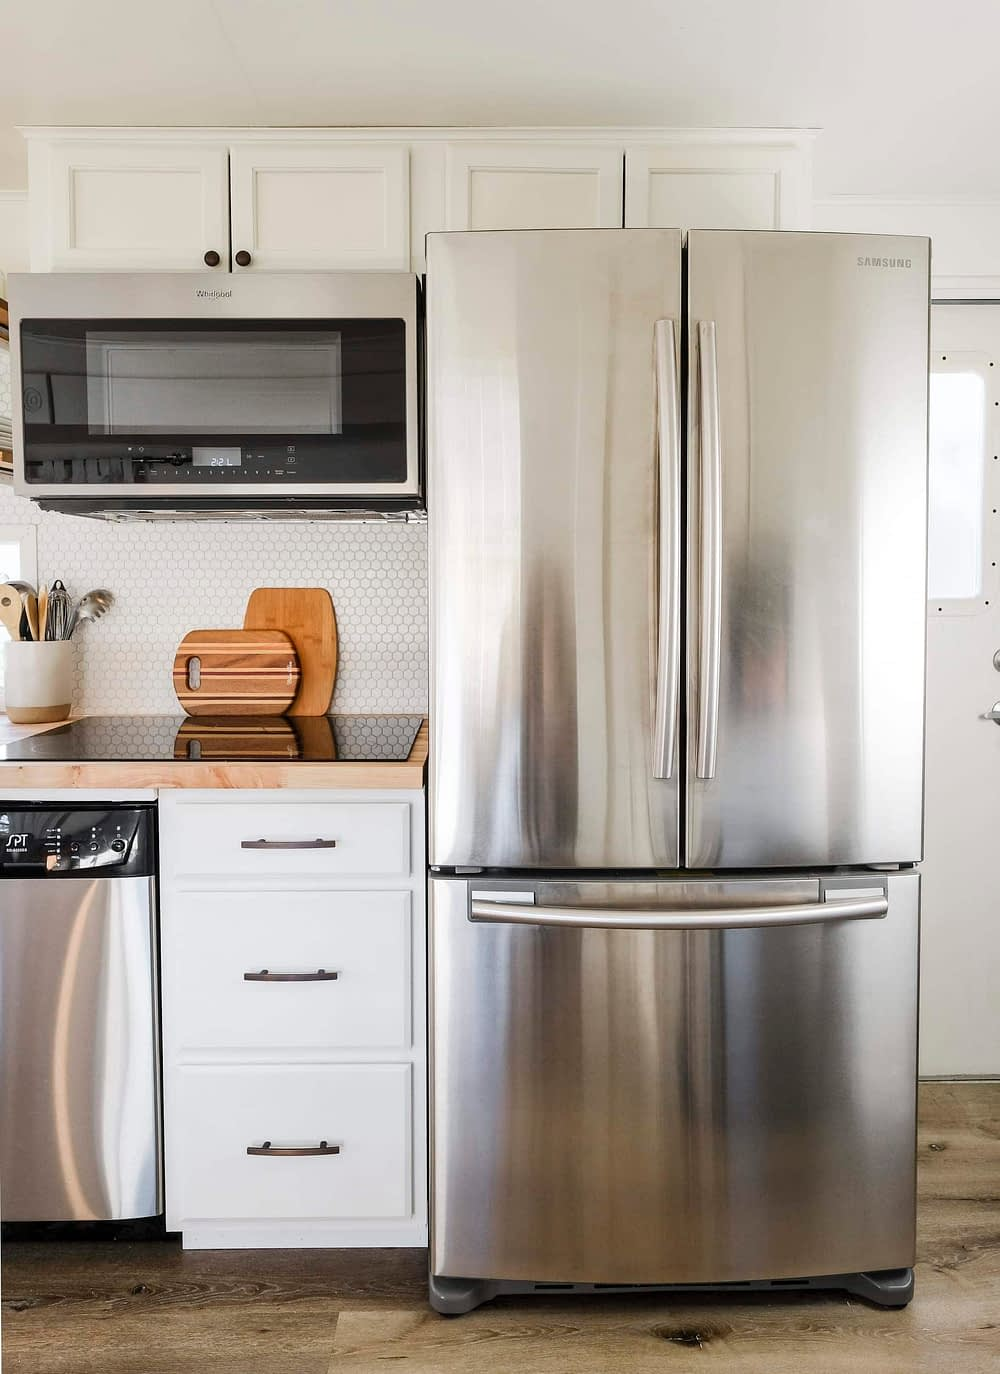 RV kitchen with full size appliances